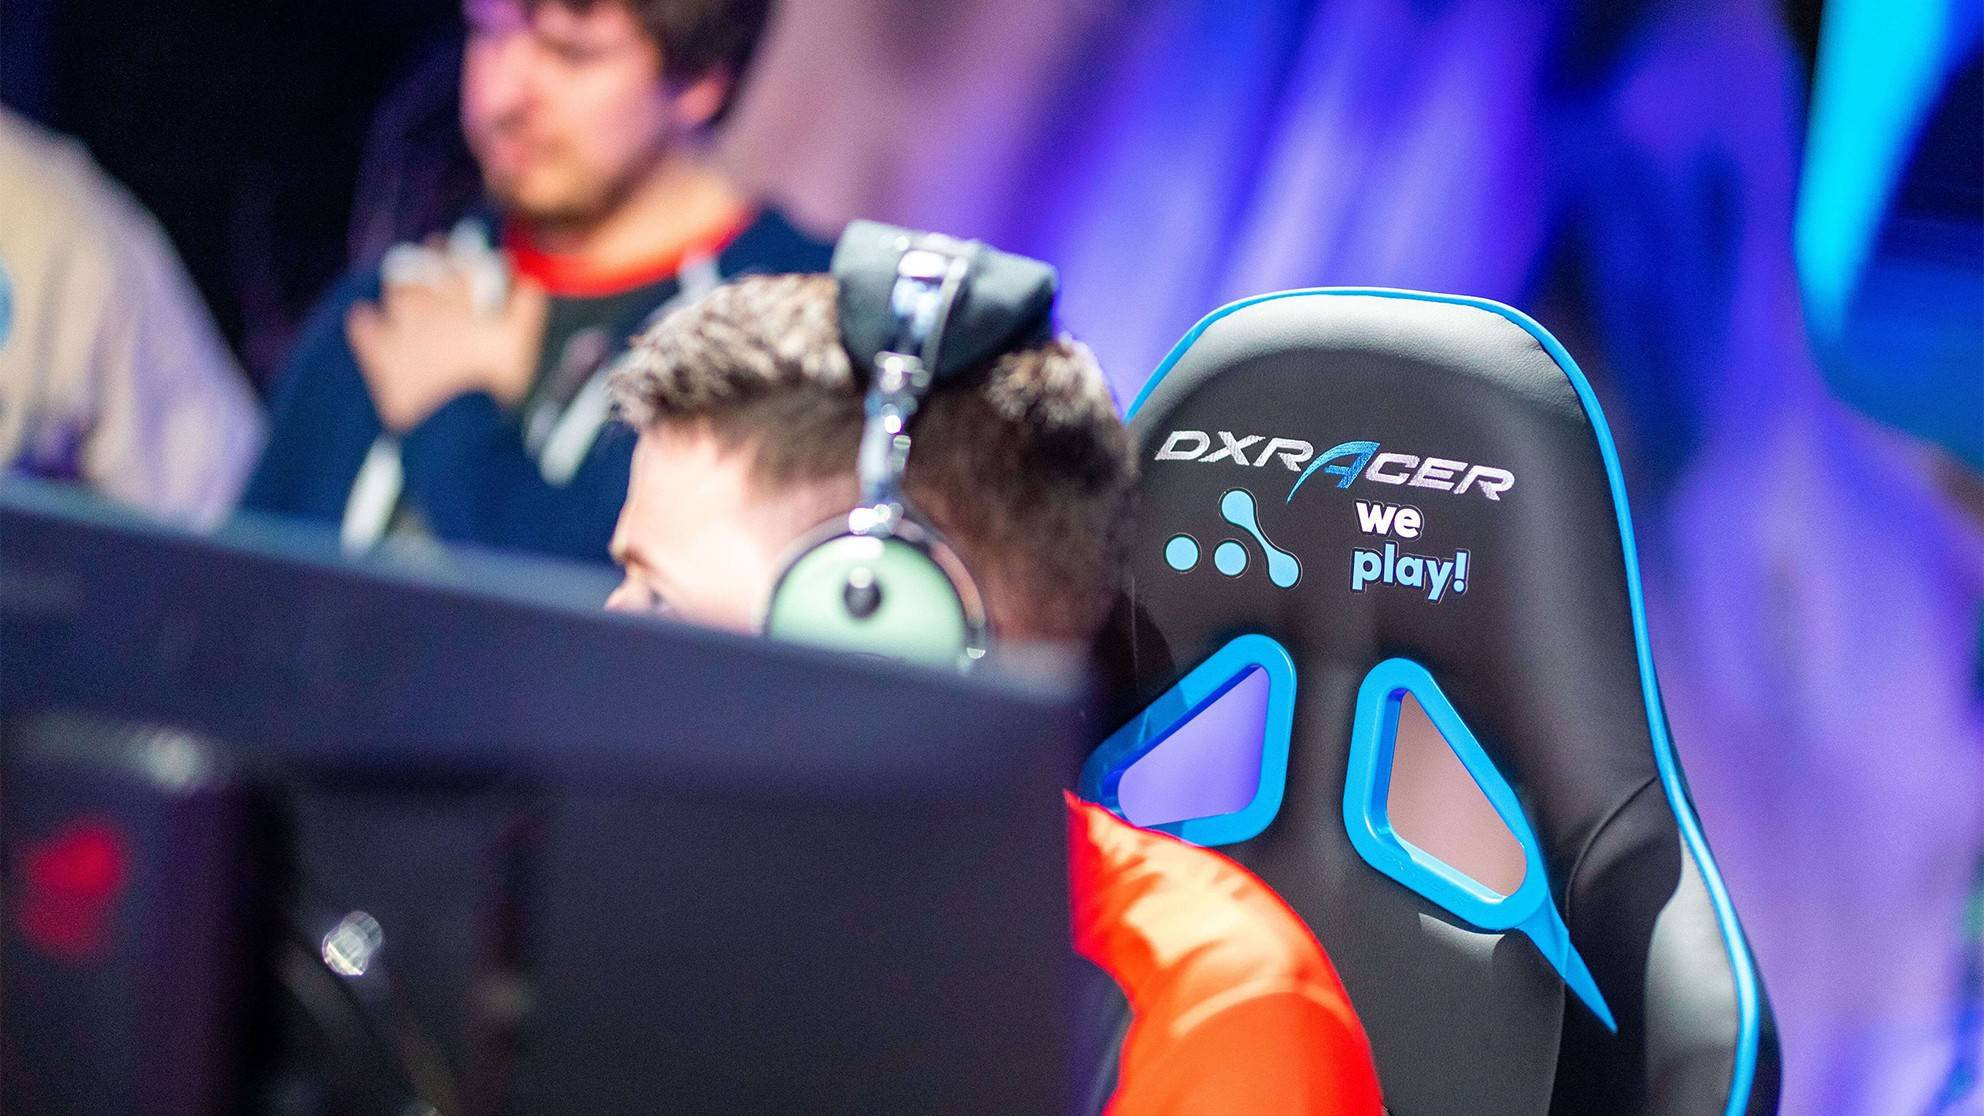 DXRacer at Forge of Masters Season 1